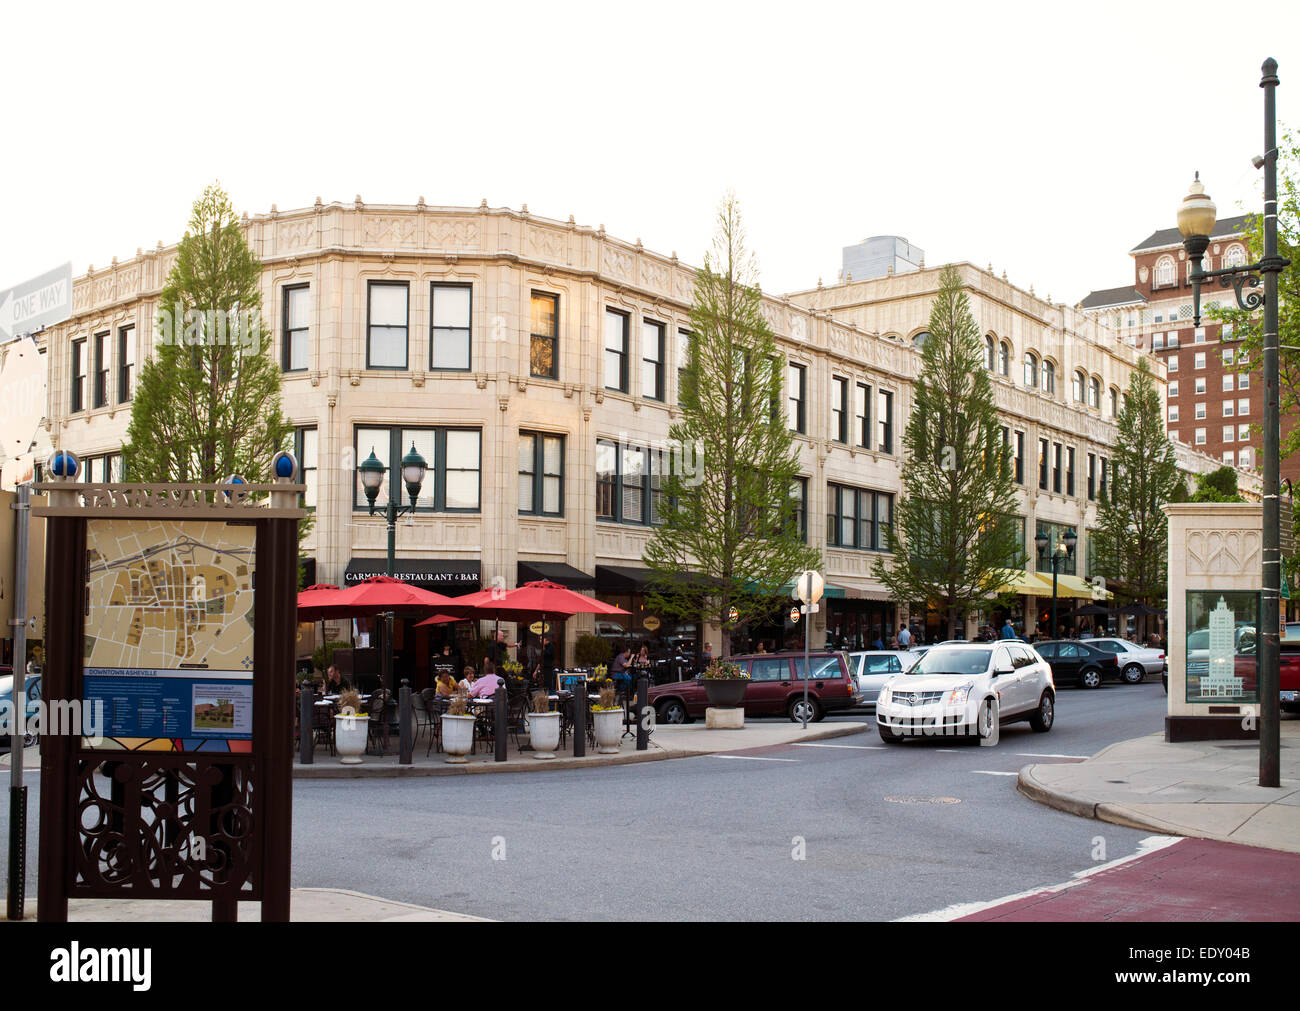 Downtown Asheville, North Carolina - Stock Image